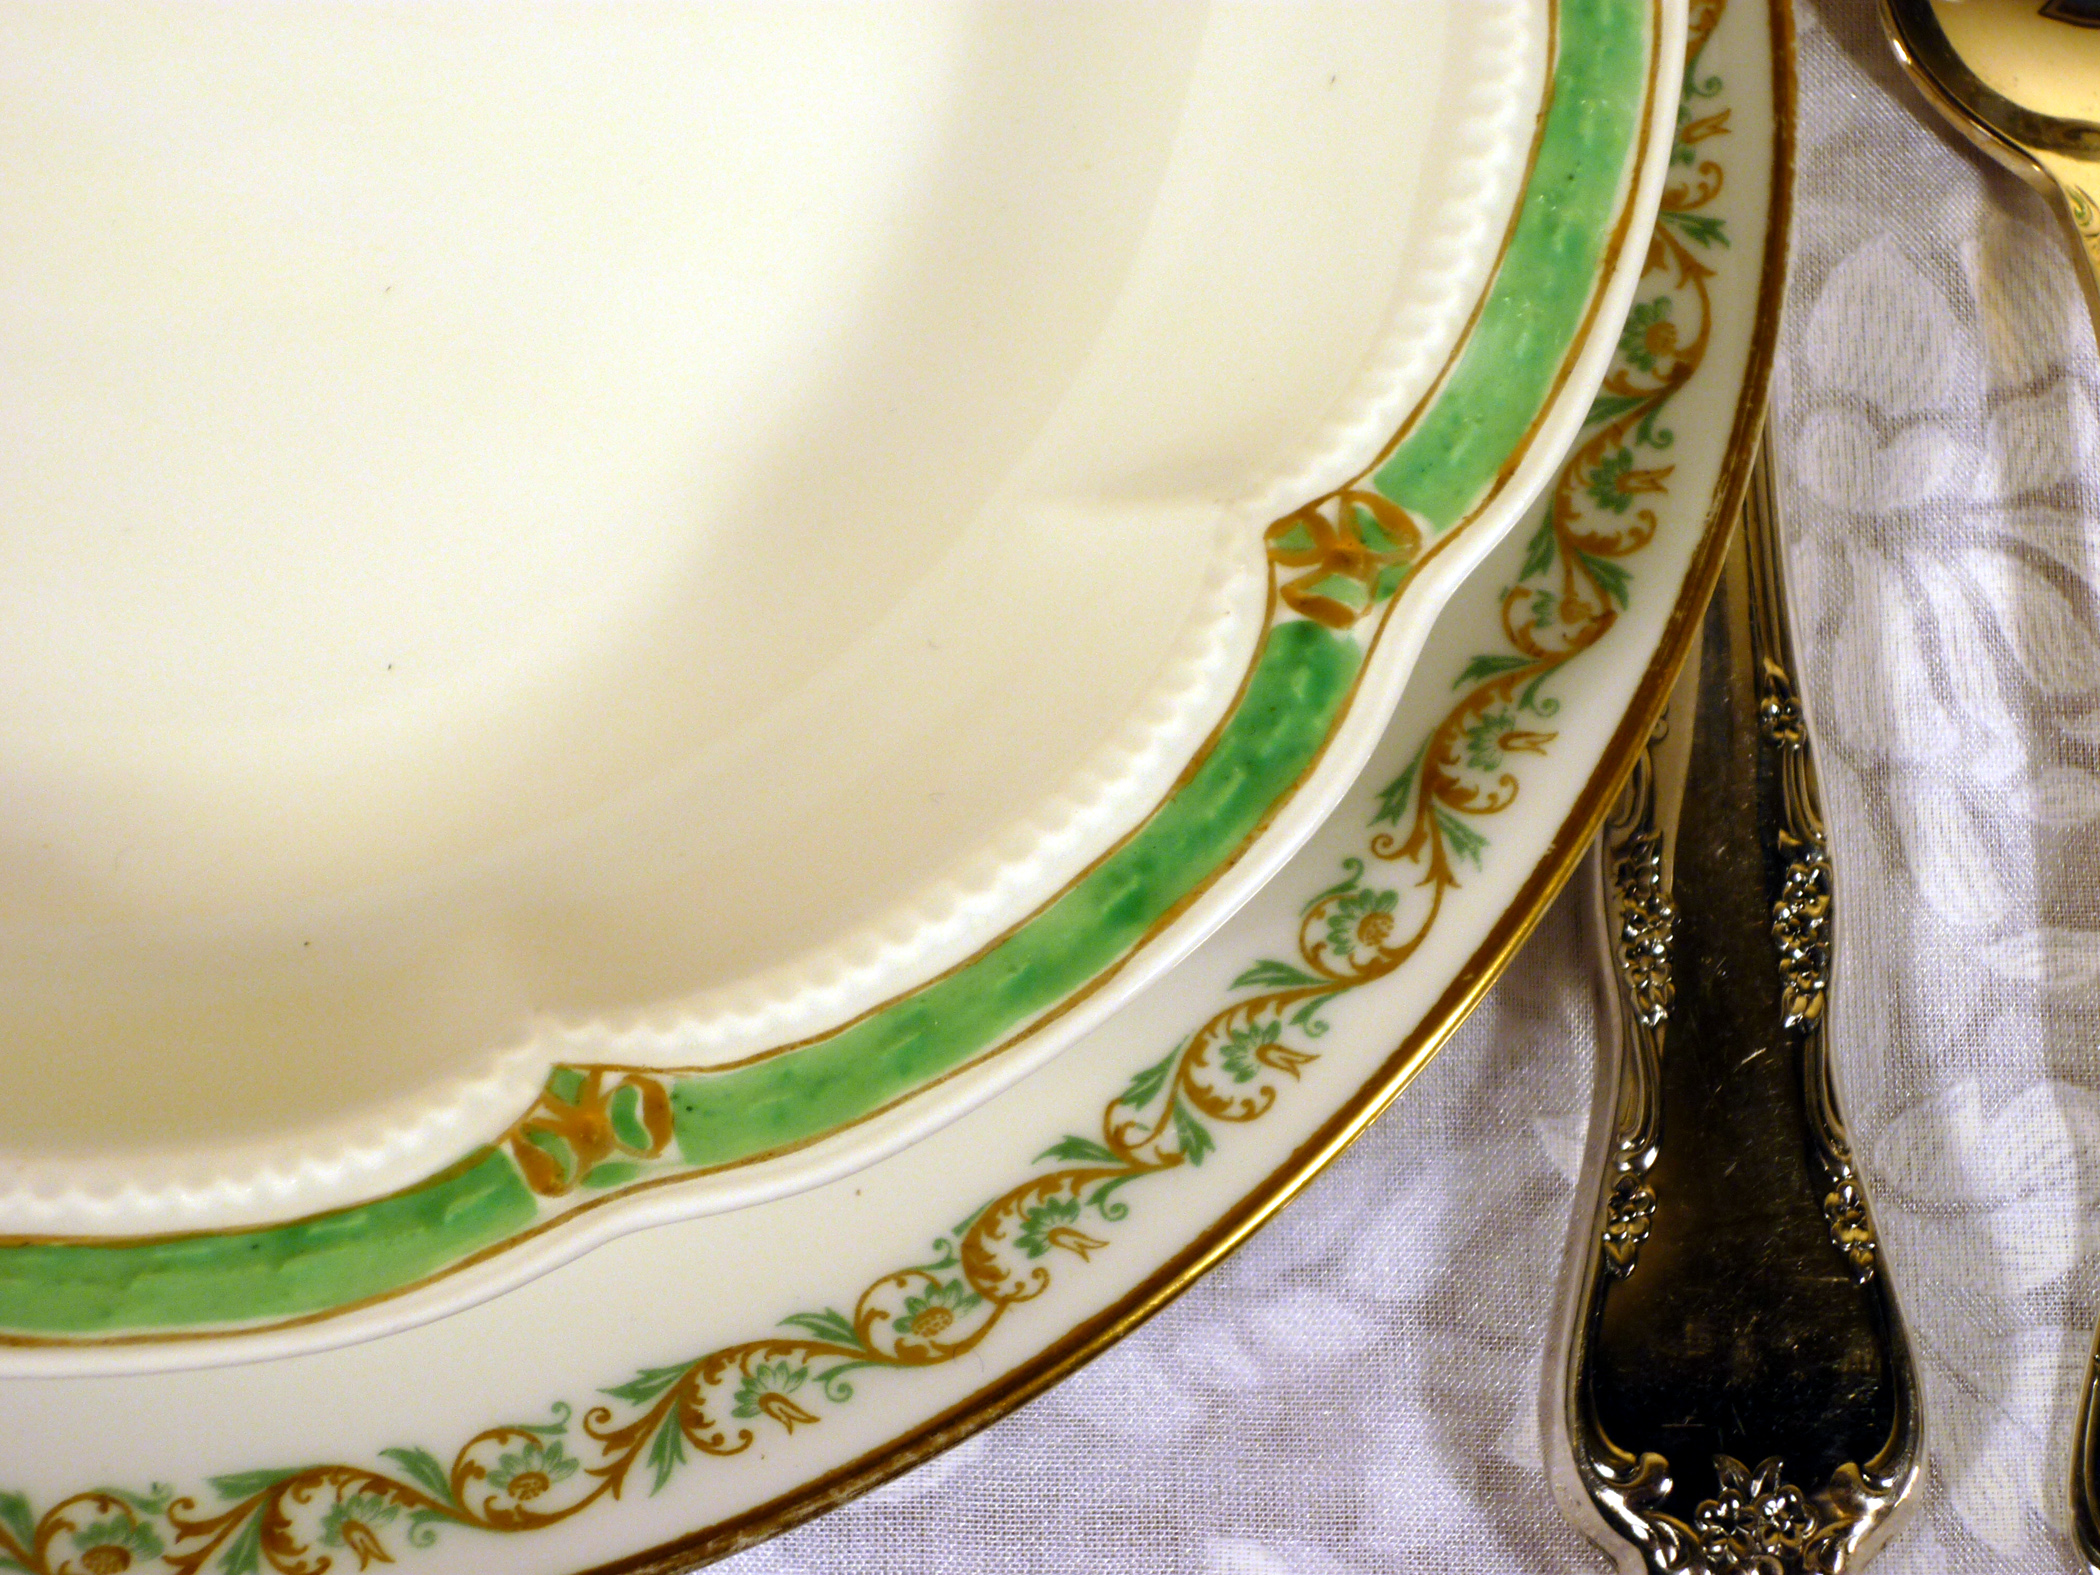 Haviland Limoges China Green Borders Detail